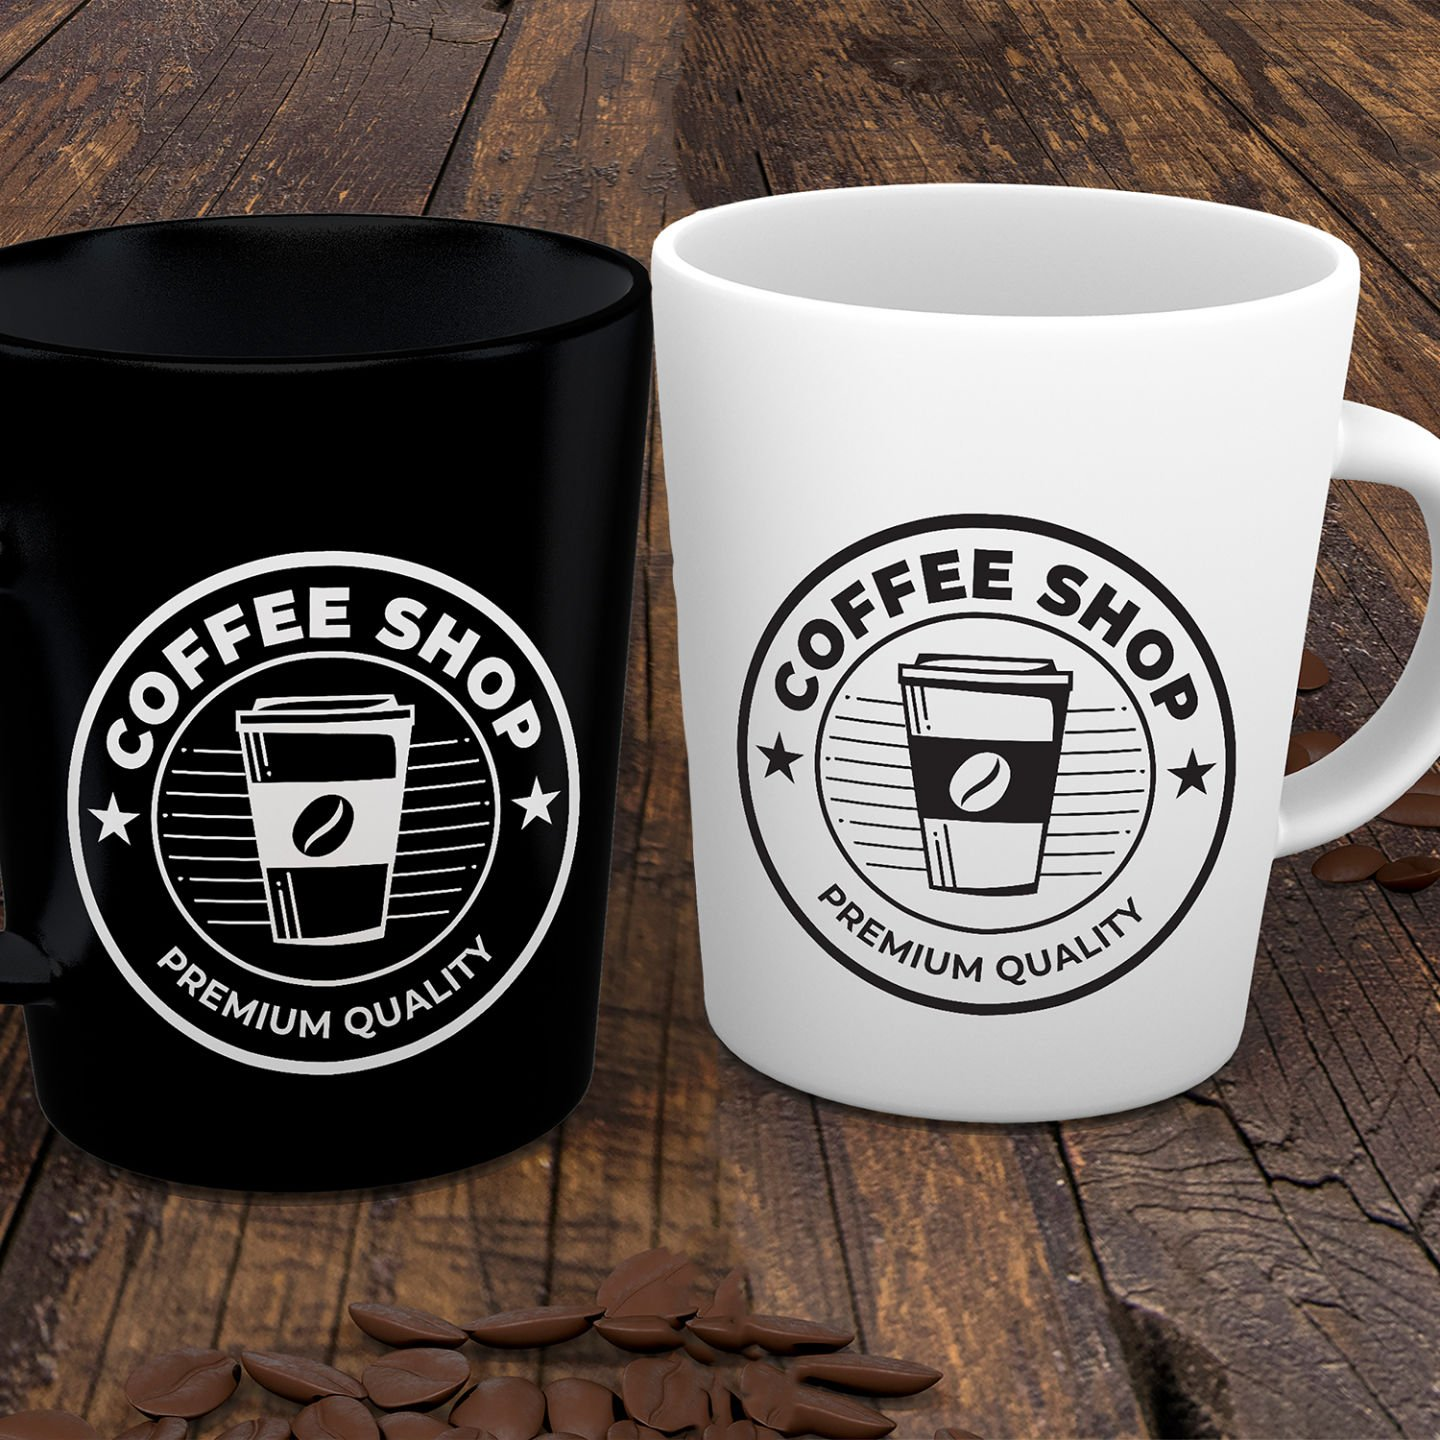 Custom mugs from Penny Lane Promotional Products